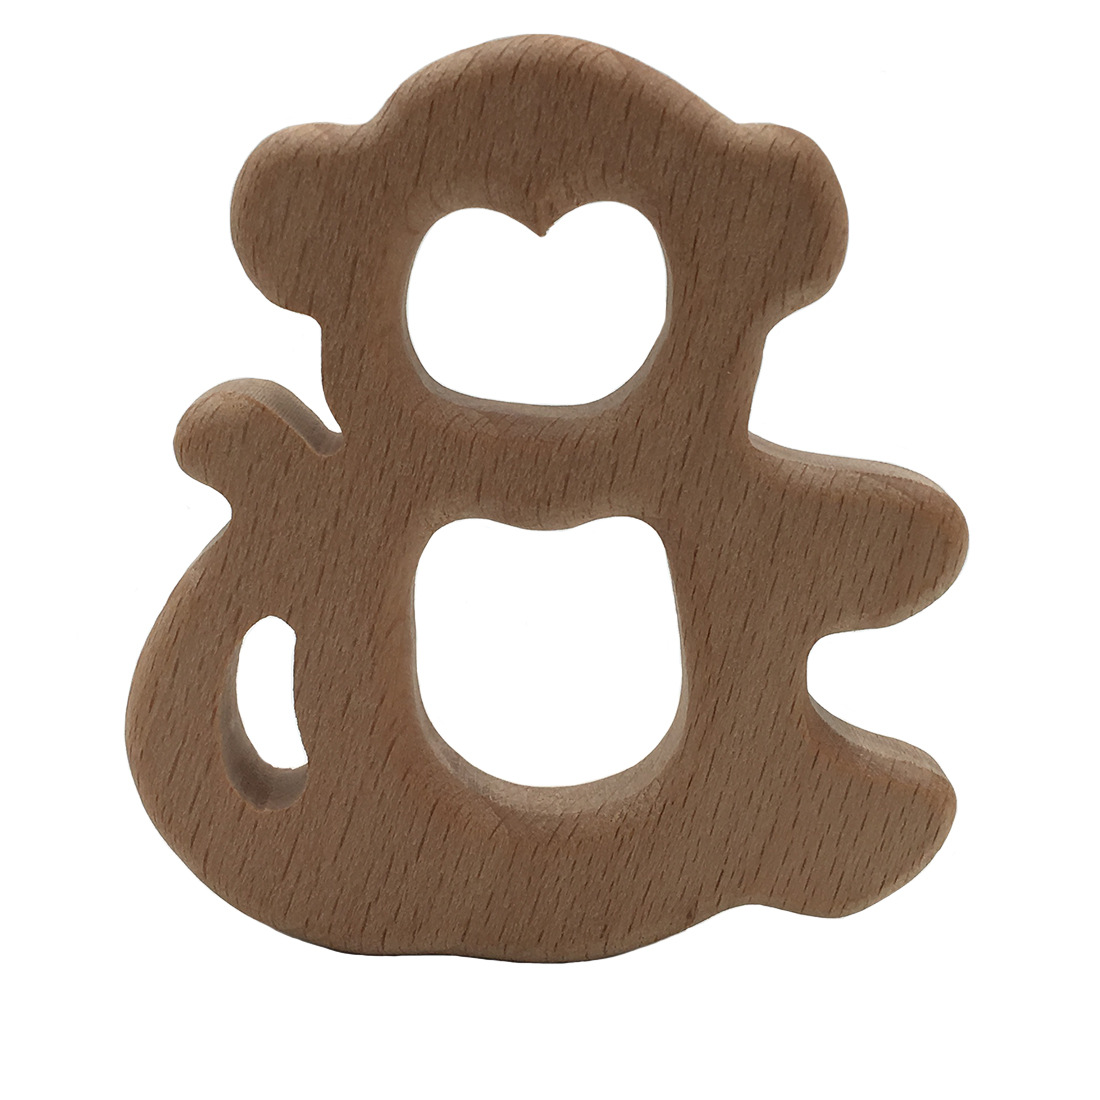 2Pcs Baby Teething Ring Chew Teether Wooden Natural Safety Sensory Toy Gift